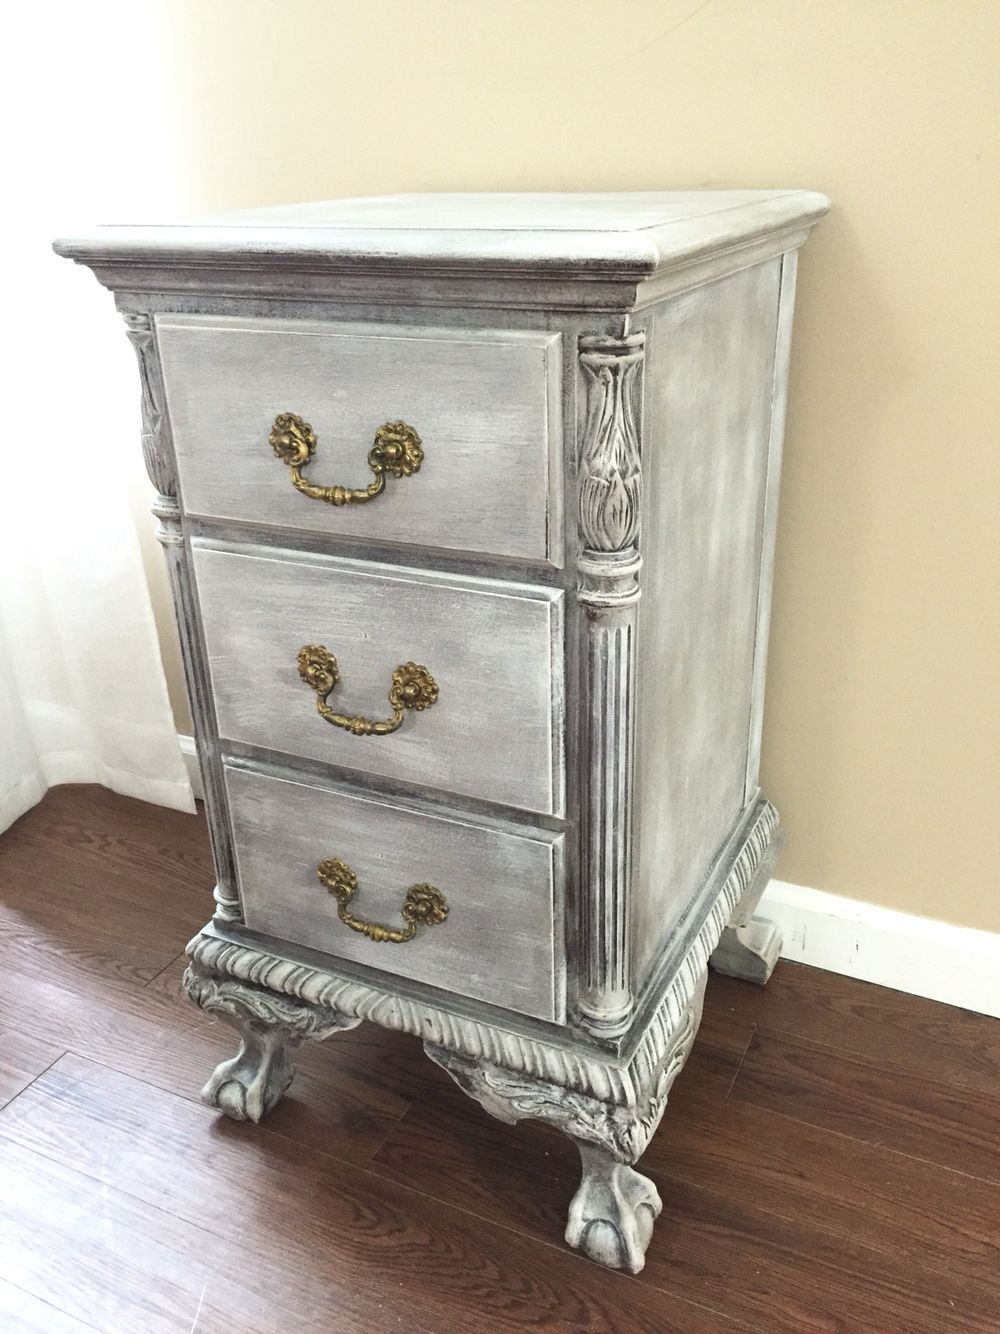 Gorgeous Antique Chippendale Nightstand With A Distressed Finish And Clear Wax Painted In Annie Sloan S Chalk Paint Delicate Carved Cabriole Legs With Ball